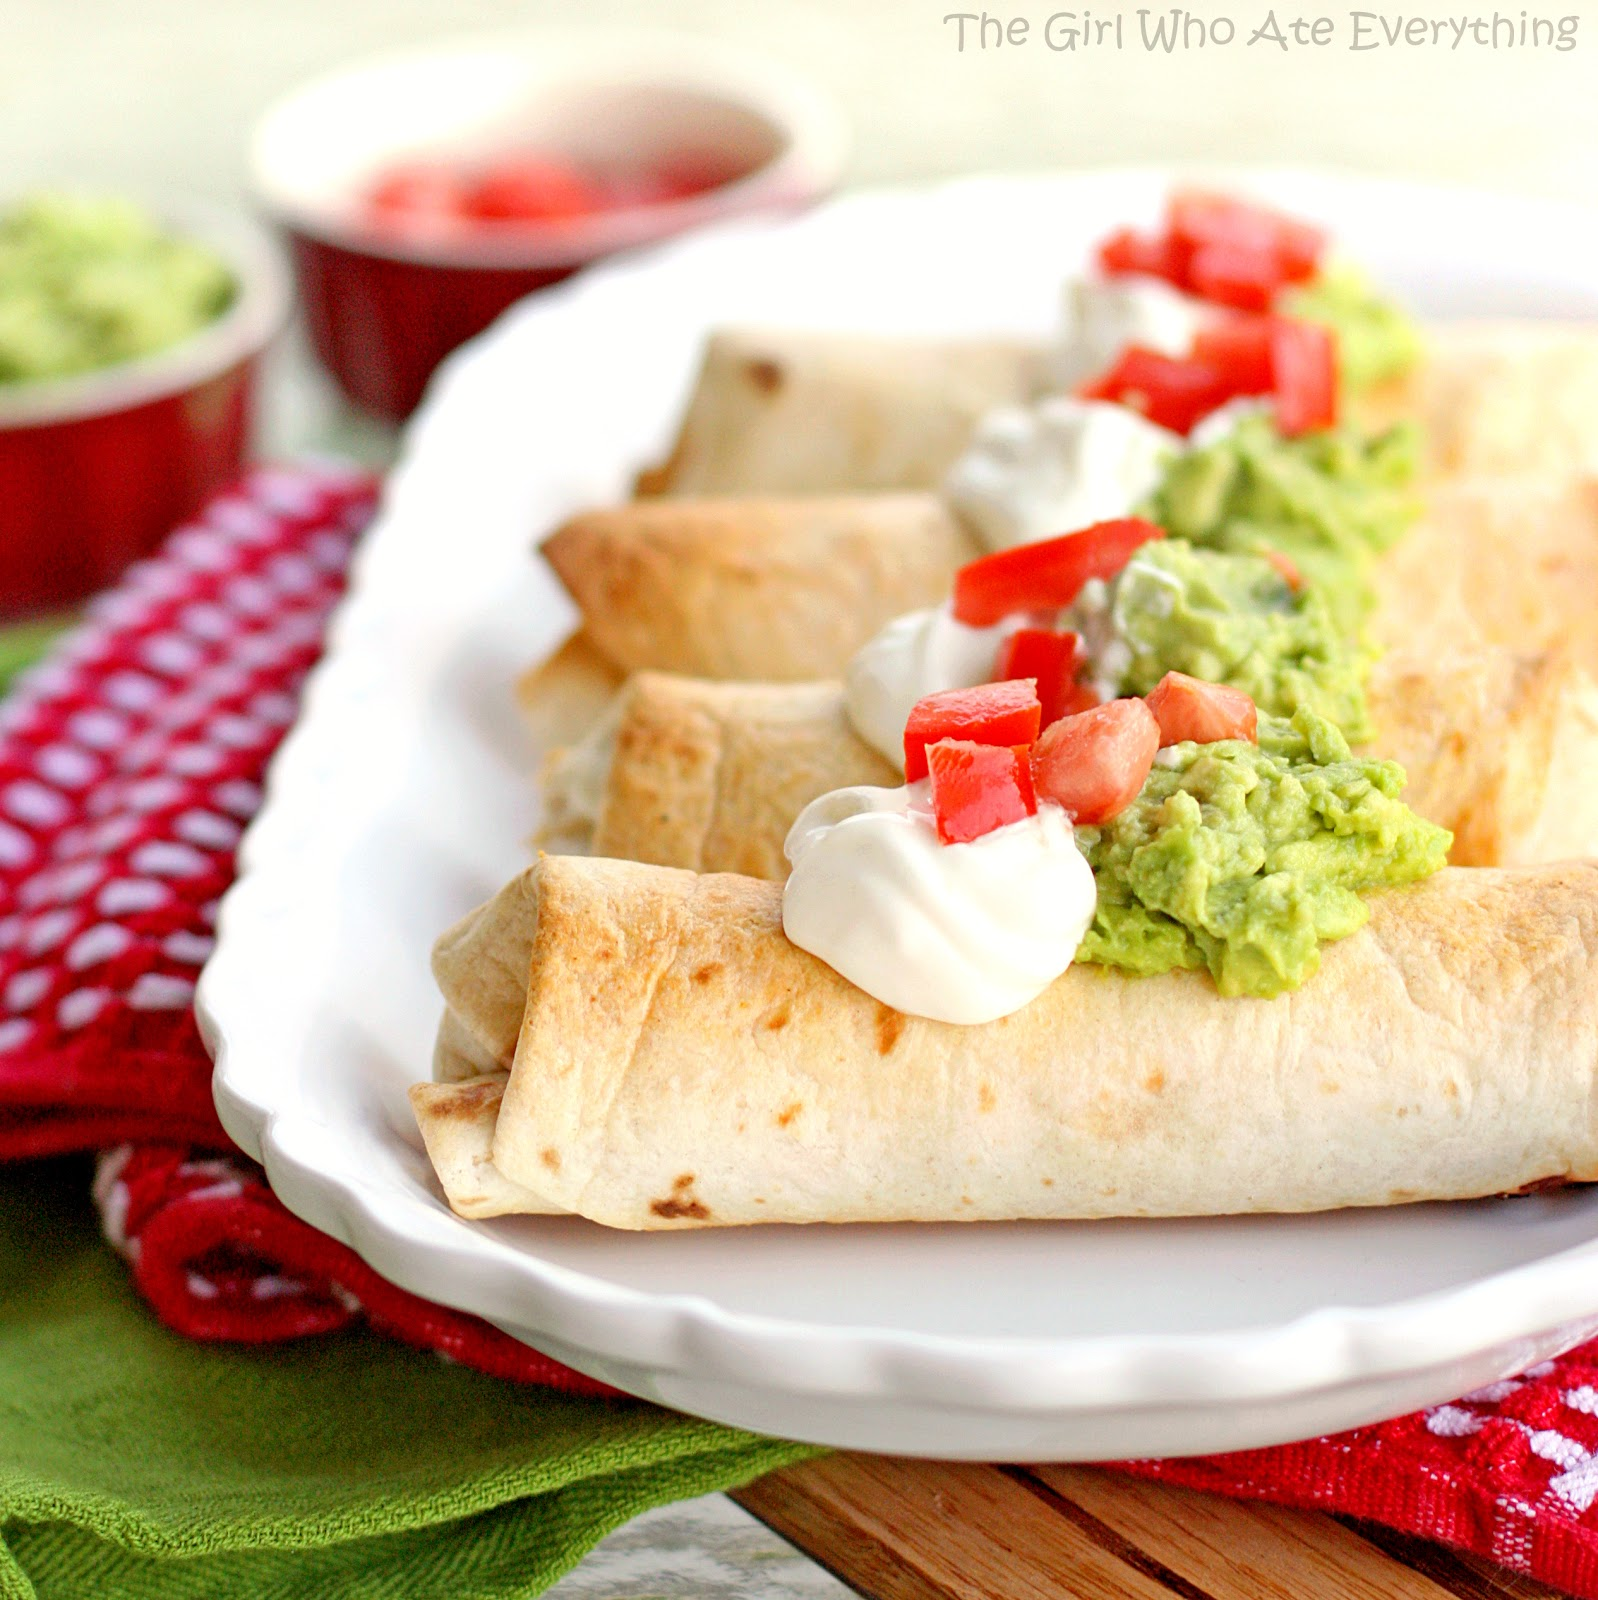 Almost Famous Chimichangas baked chicken chimichangas recipe - the girl who ate everything